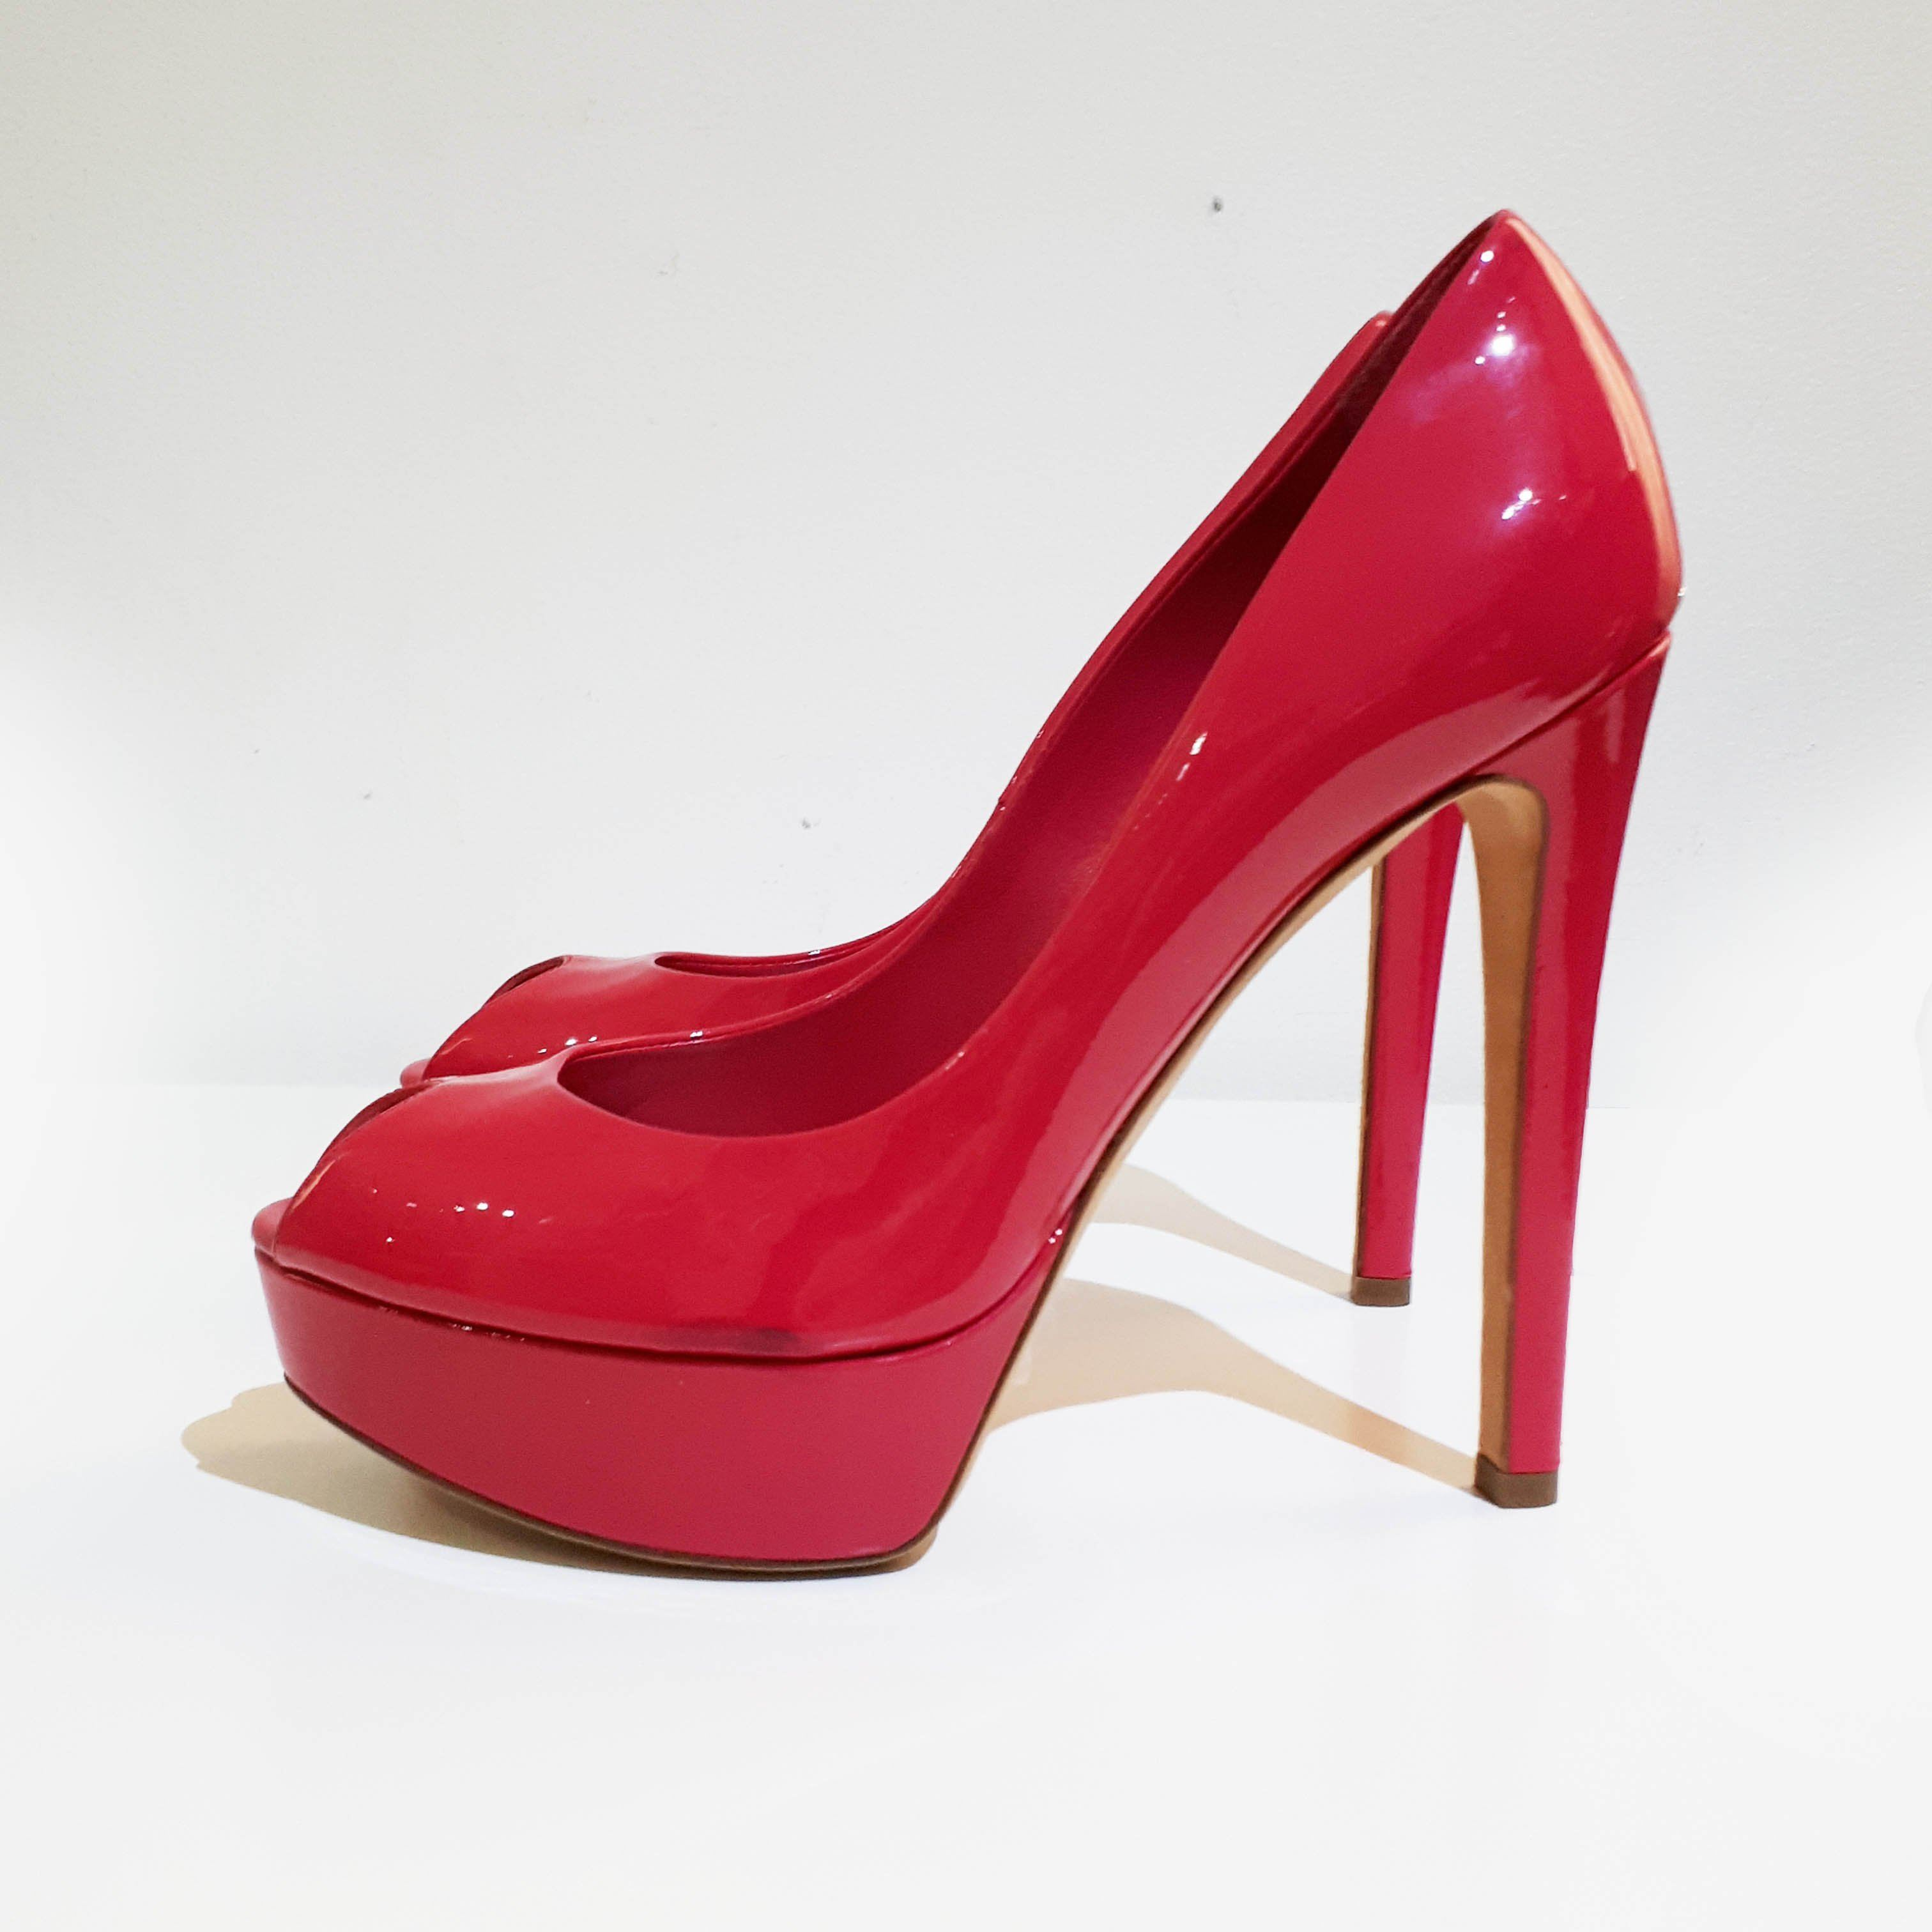 Christian Dior Pink Patent Leather Peep Toe Platform Pumps